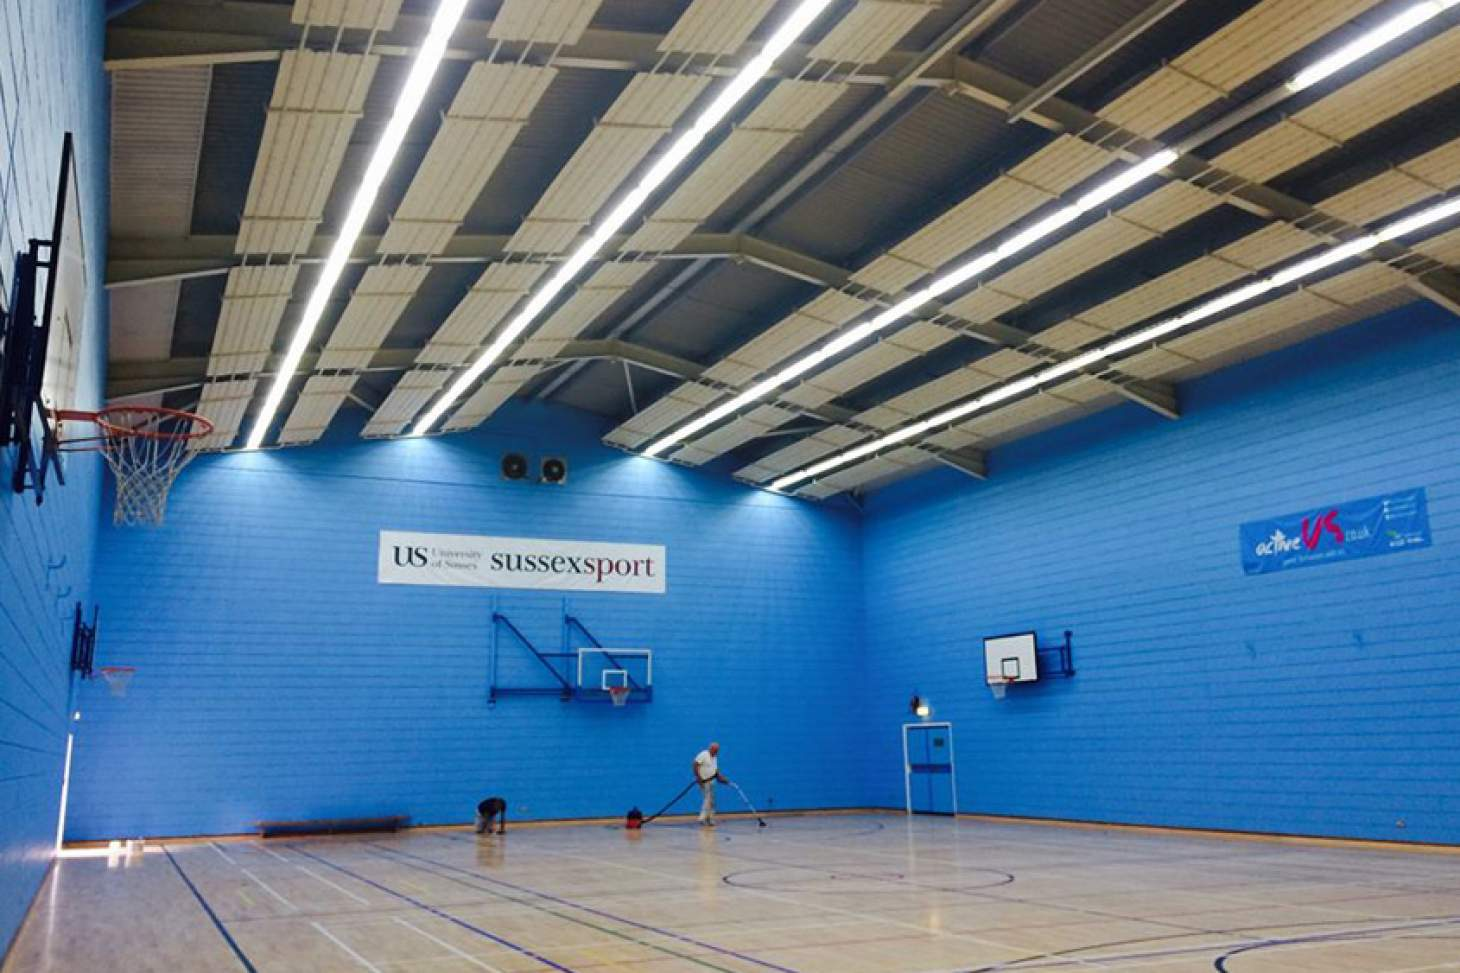 University Of Sussex Sport Centre Sports hall space hire